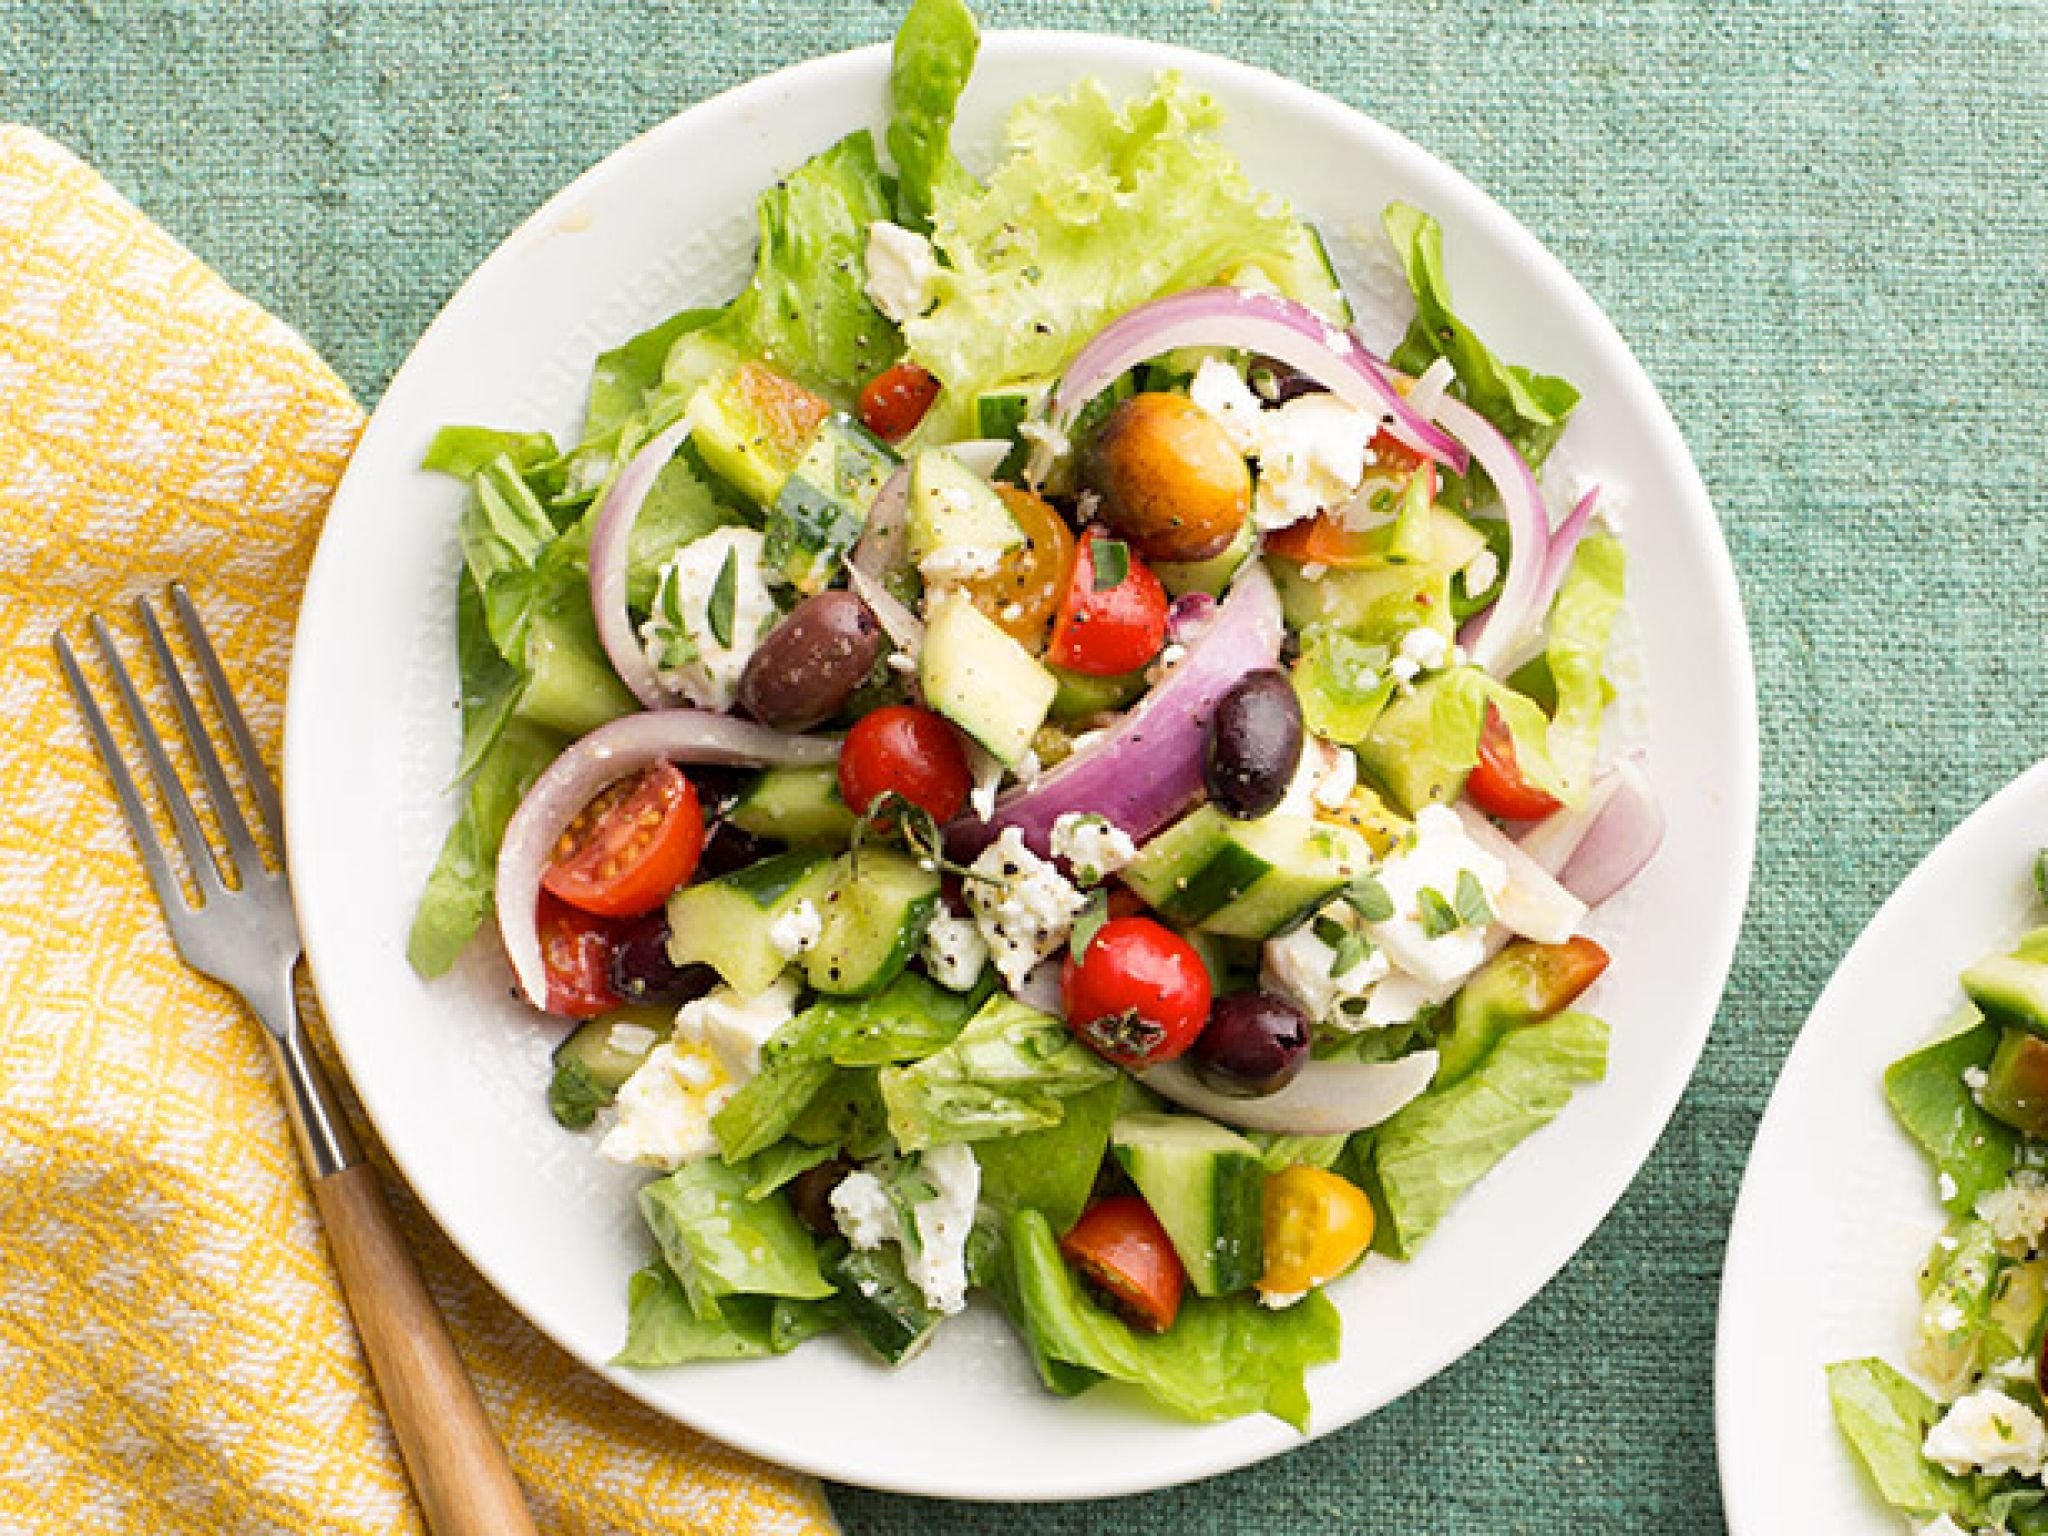 Hearty diner dinner salads food network greek salad recipes who says a salad cant be great comfort food order up diner favorites like greek and cobb salads loaded with meats cheeses and more at food network forumfinder Gallery